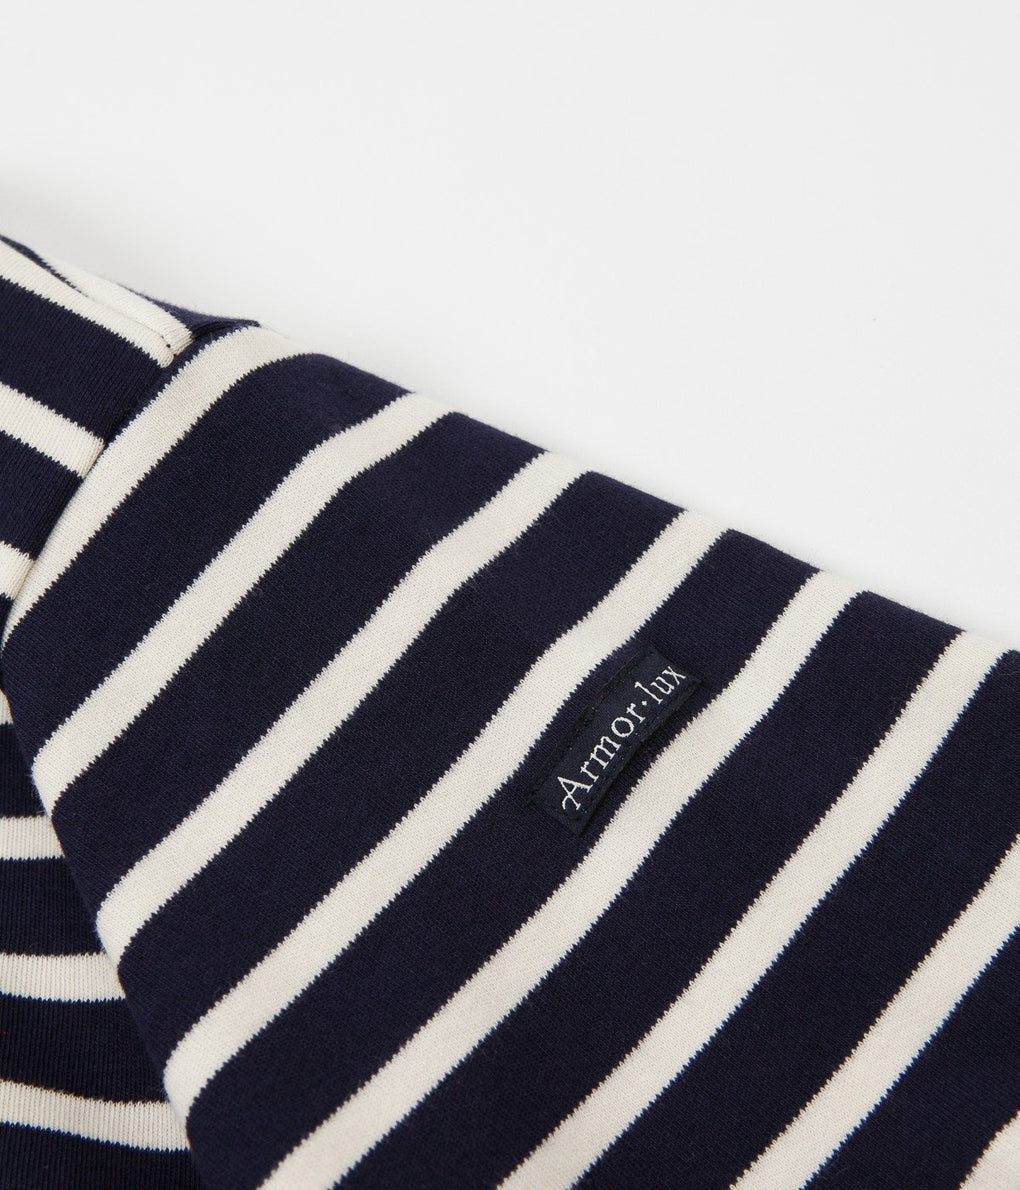 Armor Lux Doelan T-Shirt - Navy / Nature